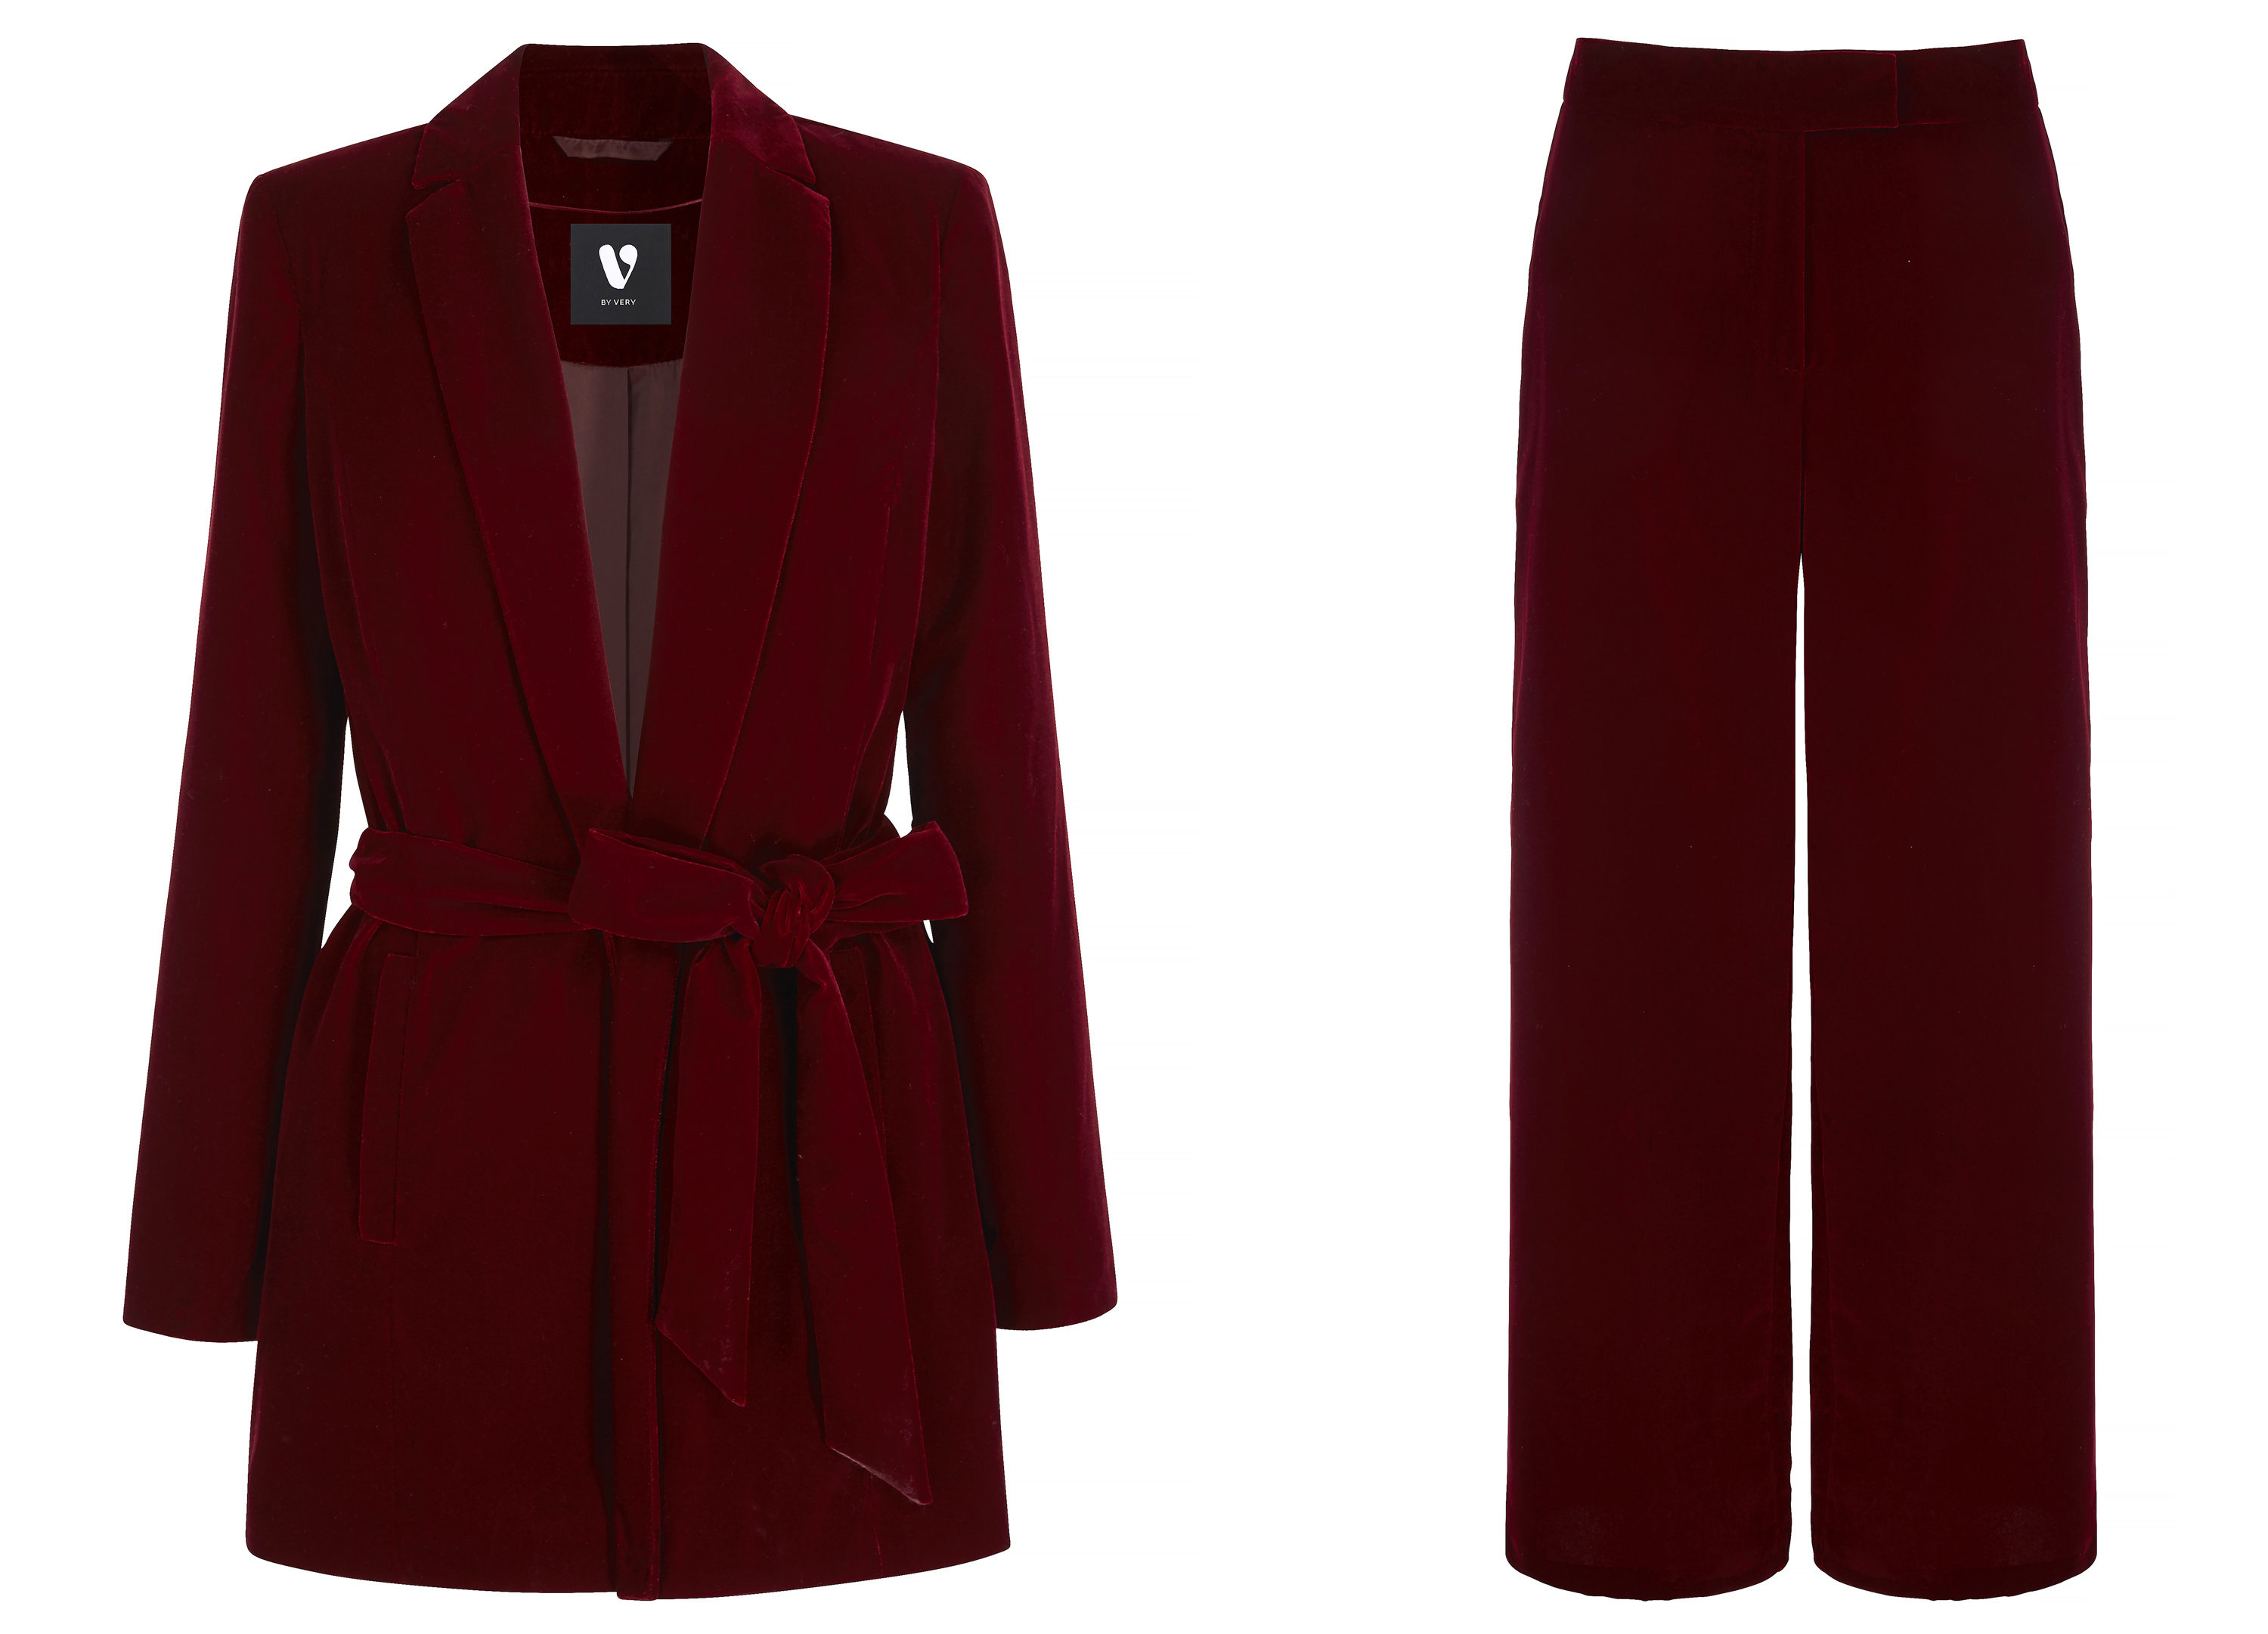 V by Very Burgundy Belted Velvet Suit Jacket; Velvet Wide Leg Suit Trousers